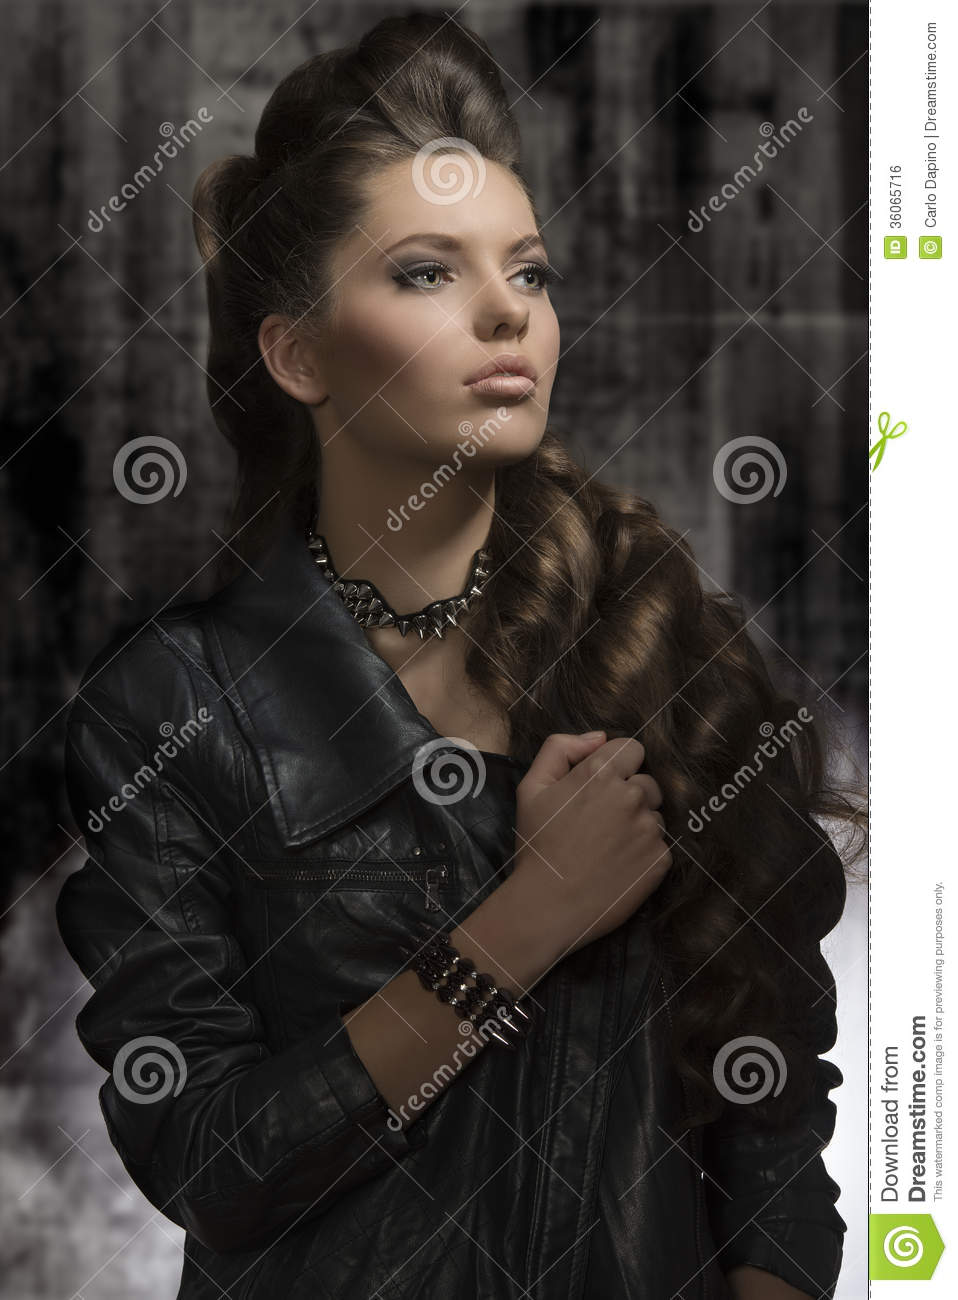 rock hair style fashion with style royalty free stock image 7180